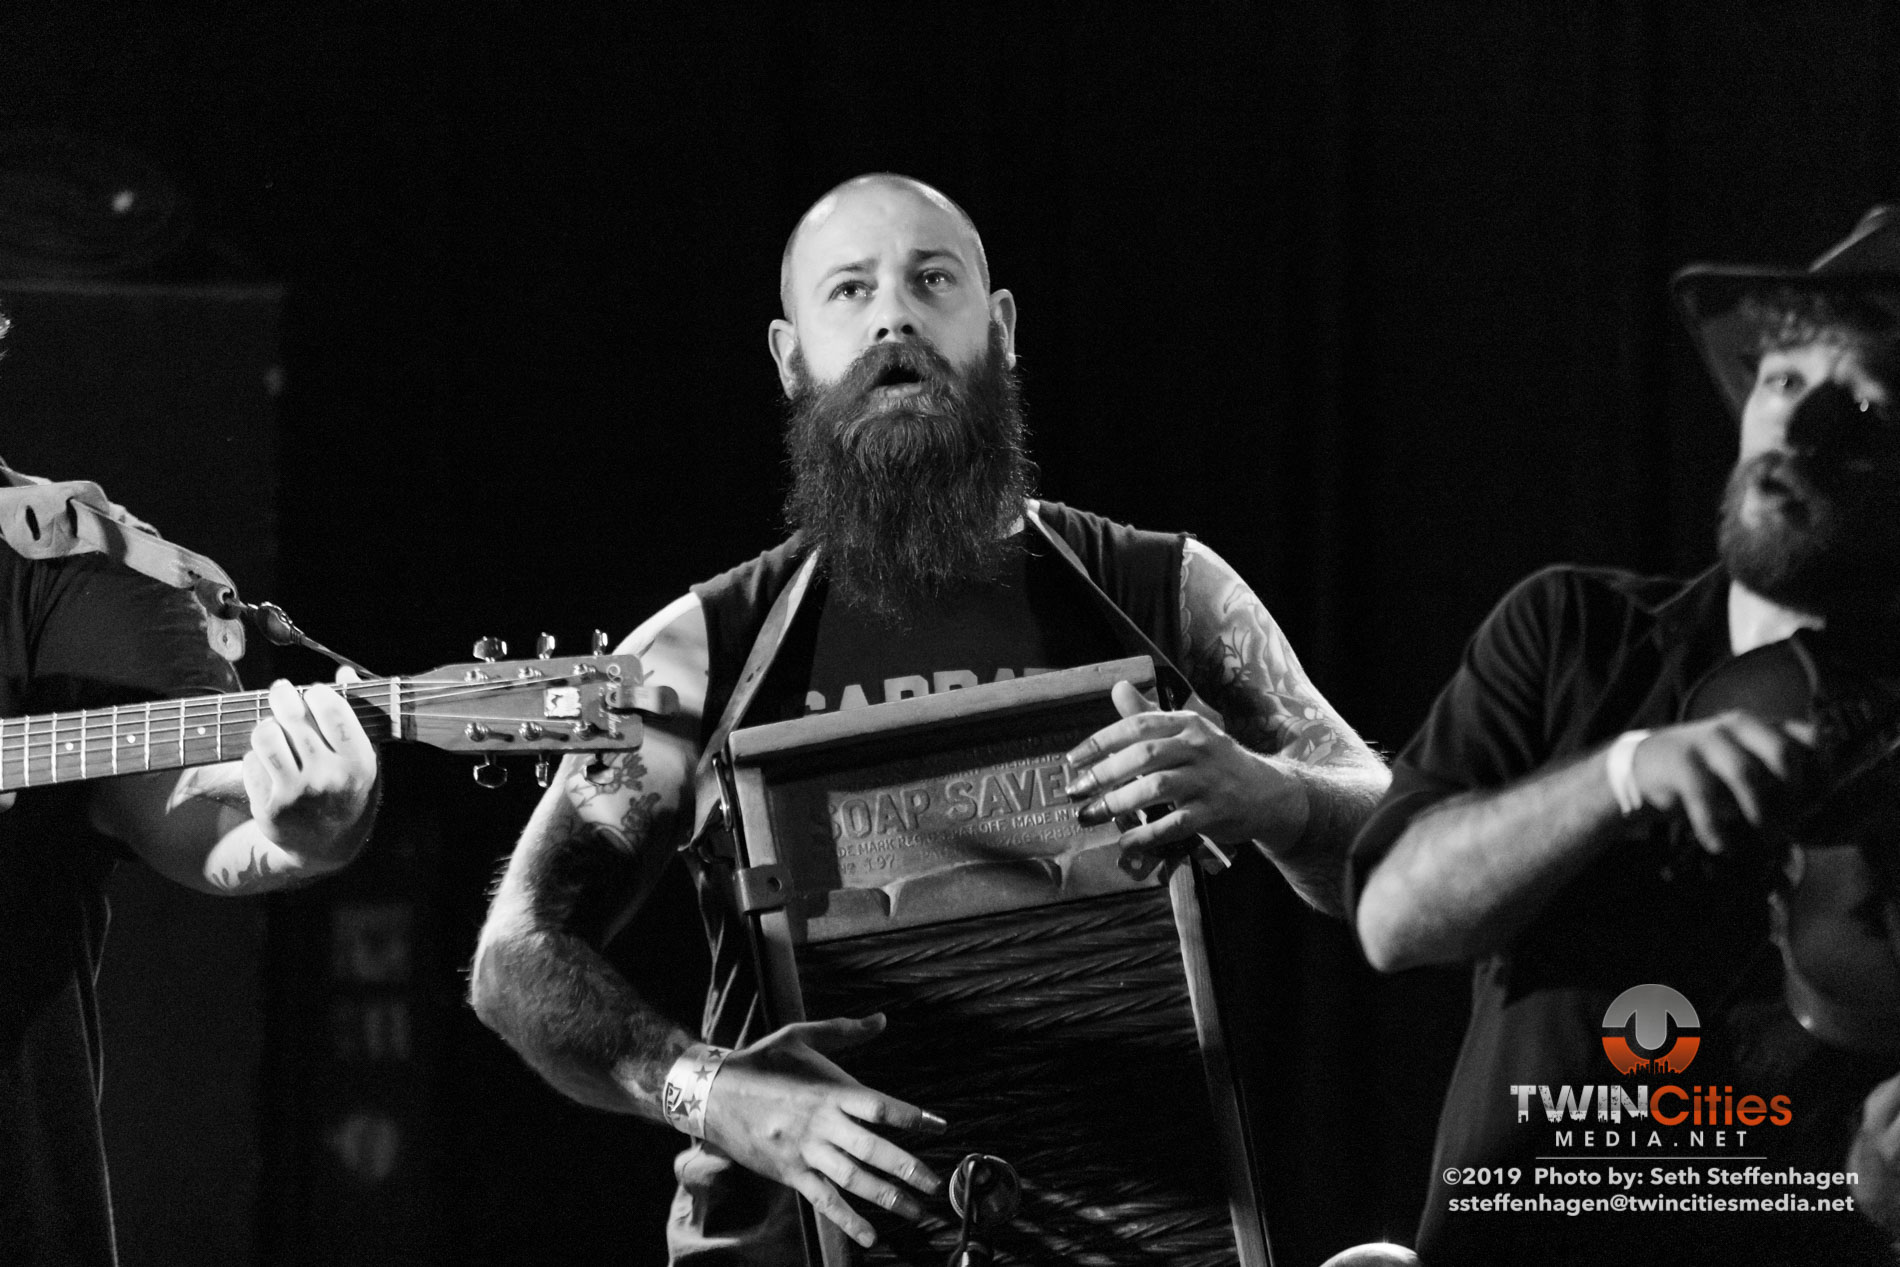 May 2, 2019 - Minneapolis, Minnesota, United States -  Tejon Street Corner Thieves live in concert at the 7th Street Entry opening for Bridge City Sinners.  (Photo by Seth Steffenhagen/Steffenhagen Photography)